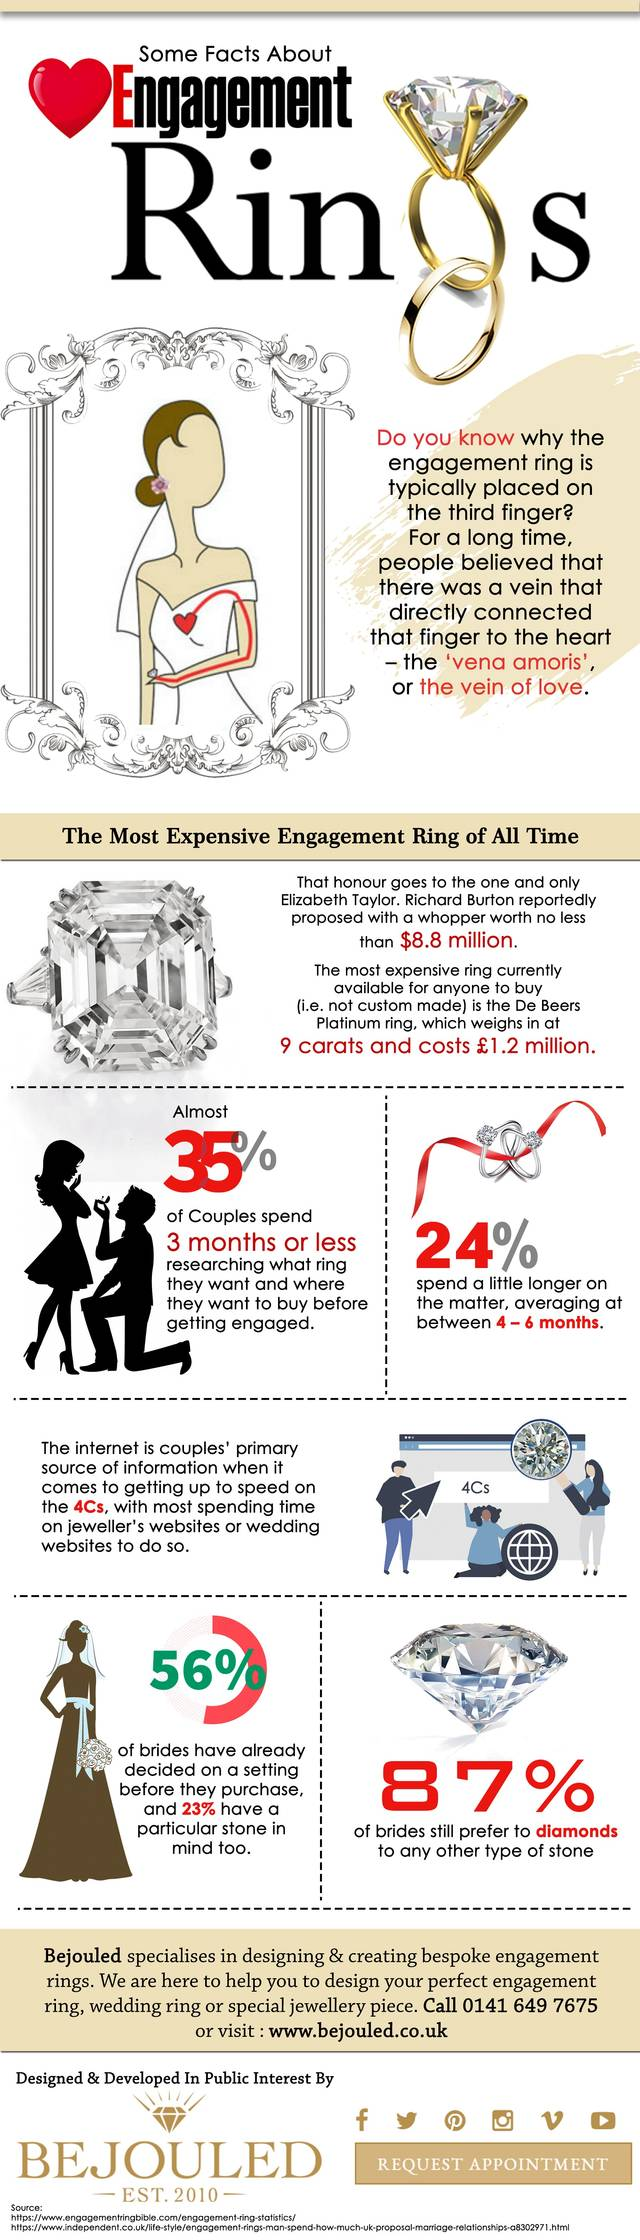 Engaement ring .